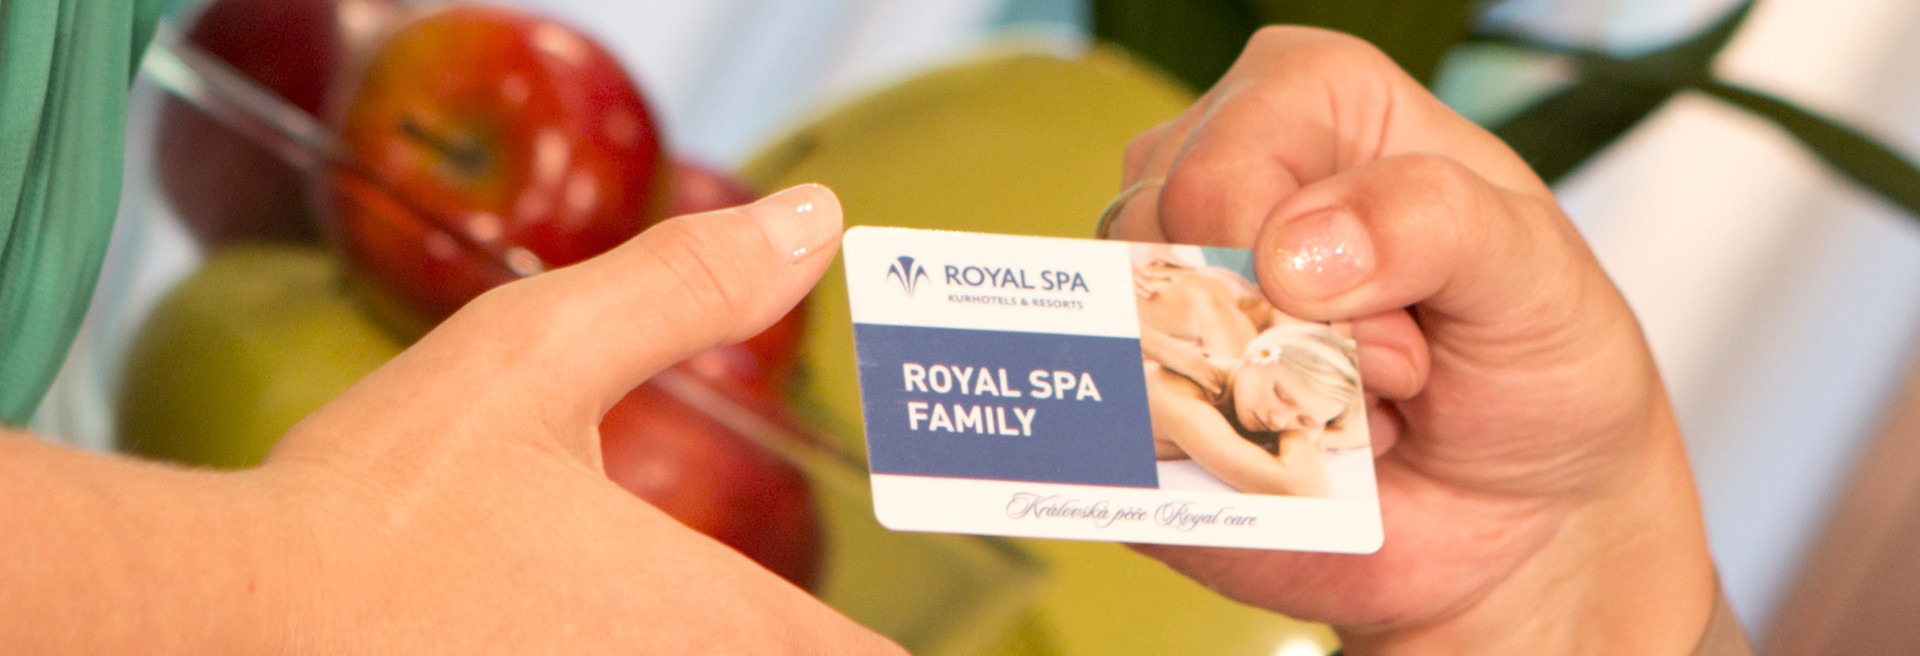 ROYAL SPA FAMILY - loyalty program